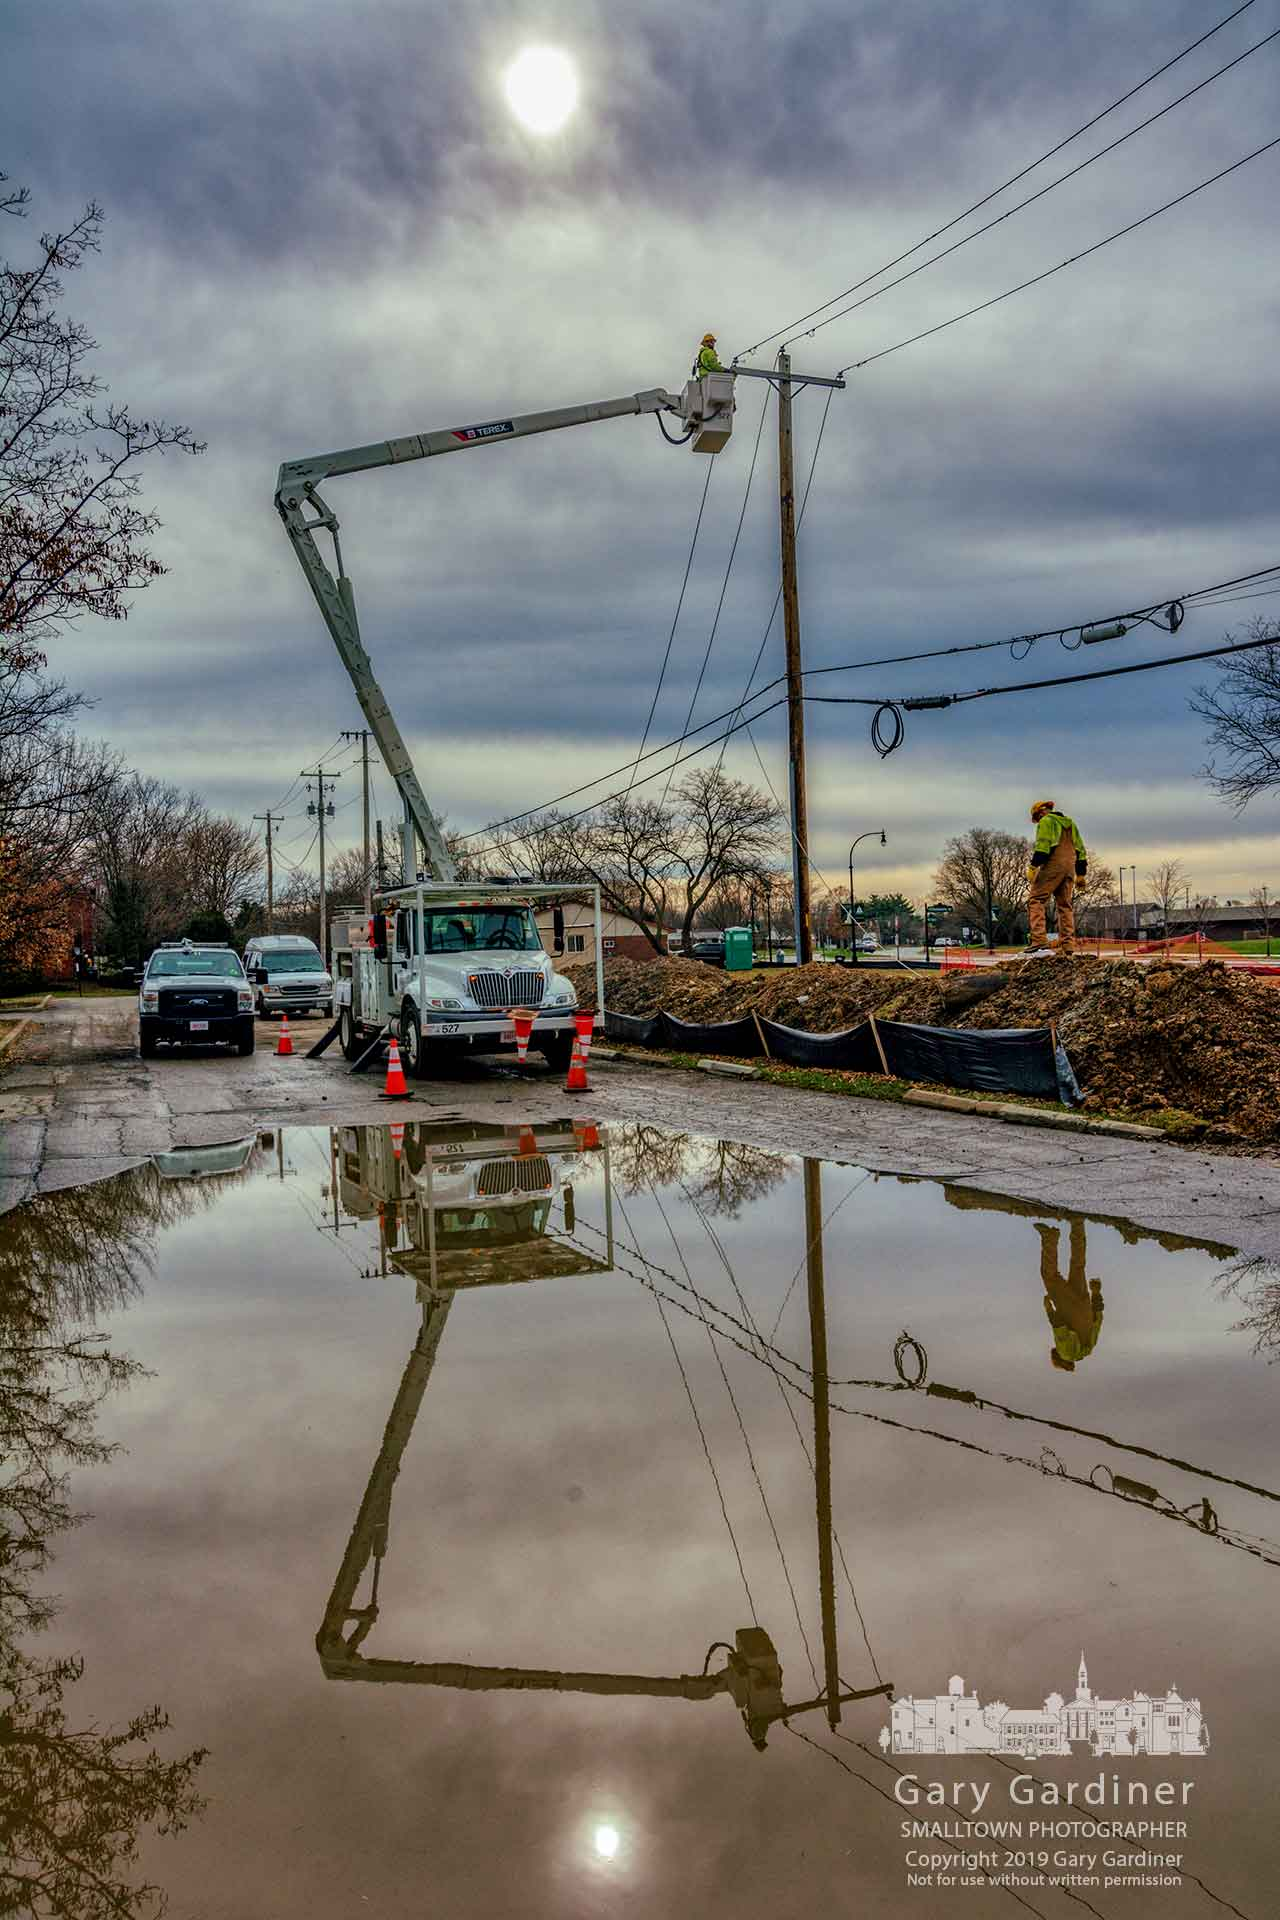 City electricians reroute overhead power lines to underground conduits as construction begins on the First Watch restaurant at the corner of South State and Huber Village. My Final Photo for April 2, 2019.